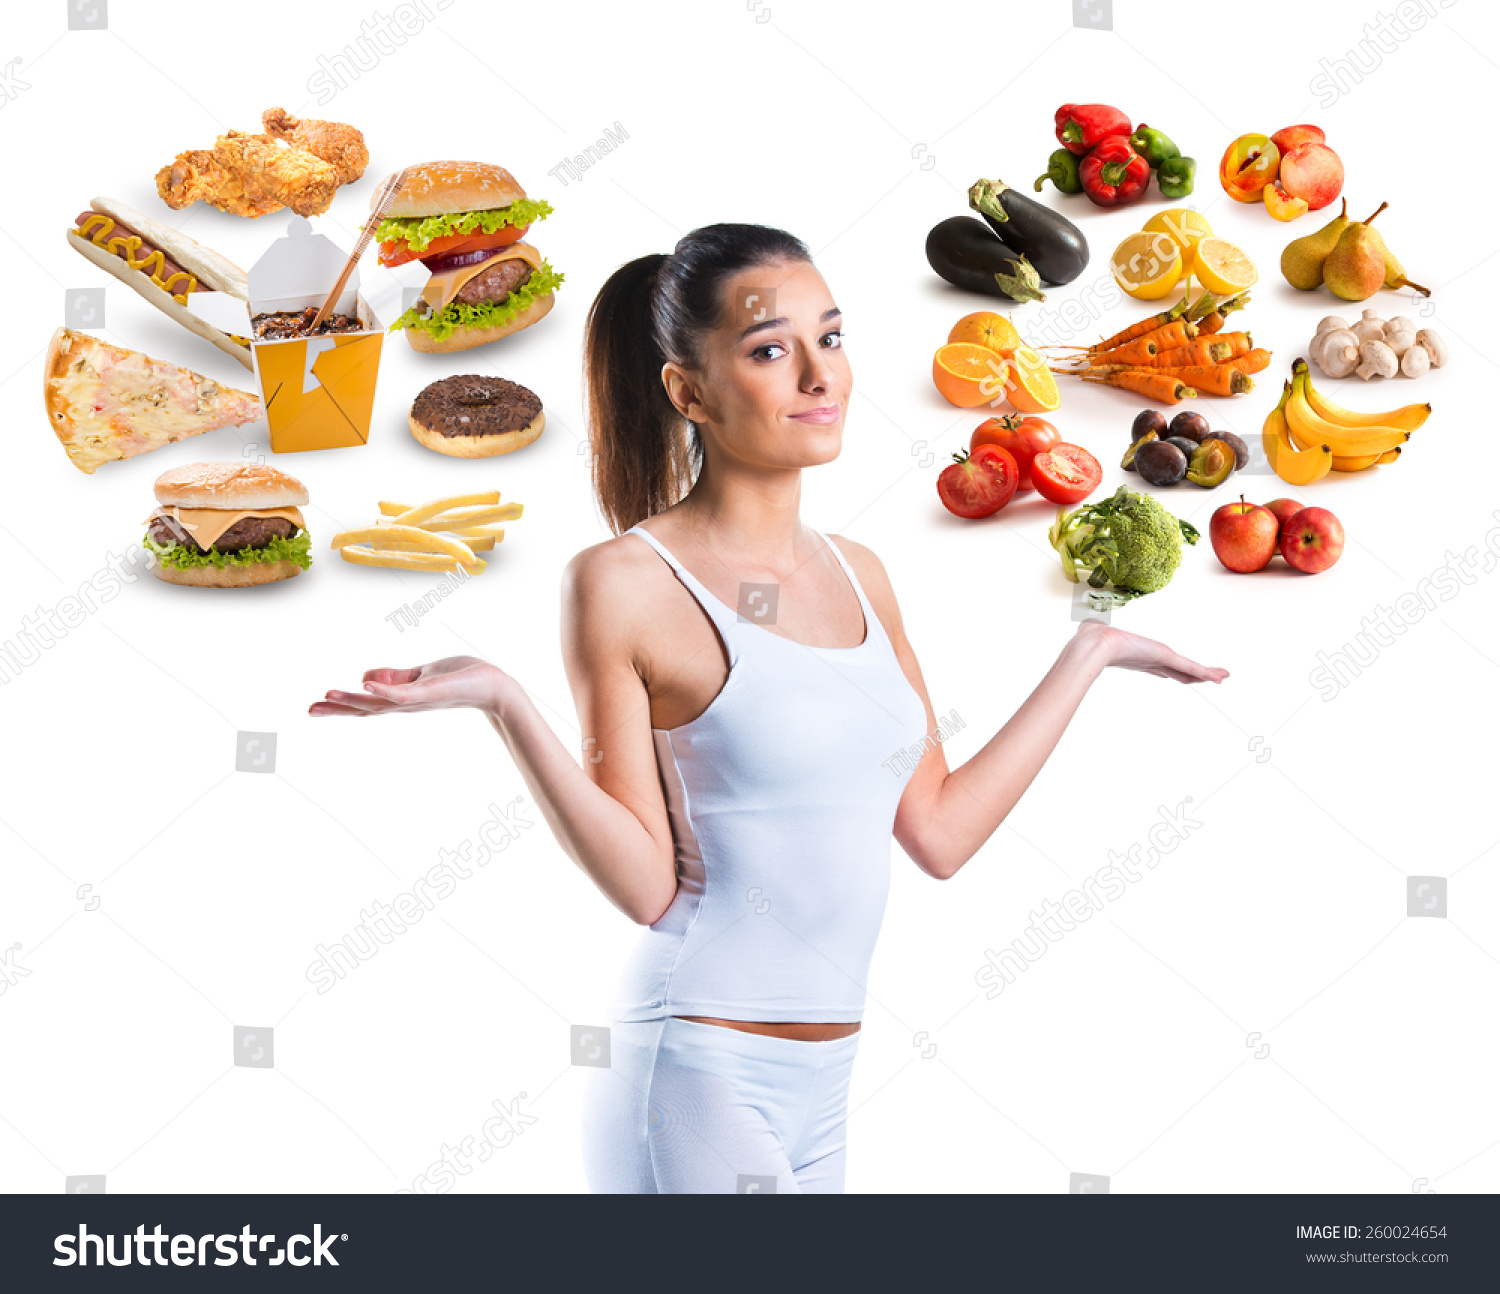 Unhealthy Vs Healthy Food Stock Photo Shutterstock